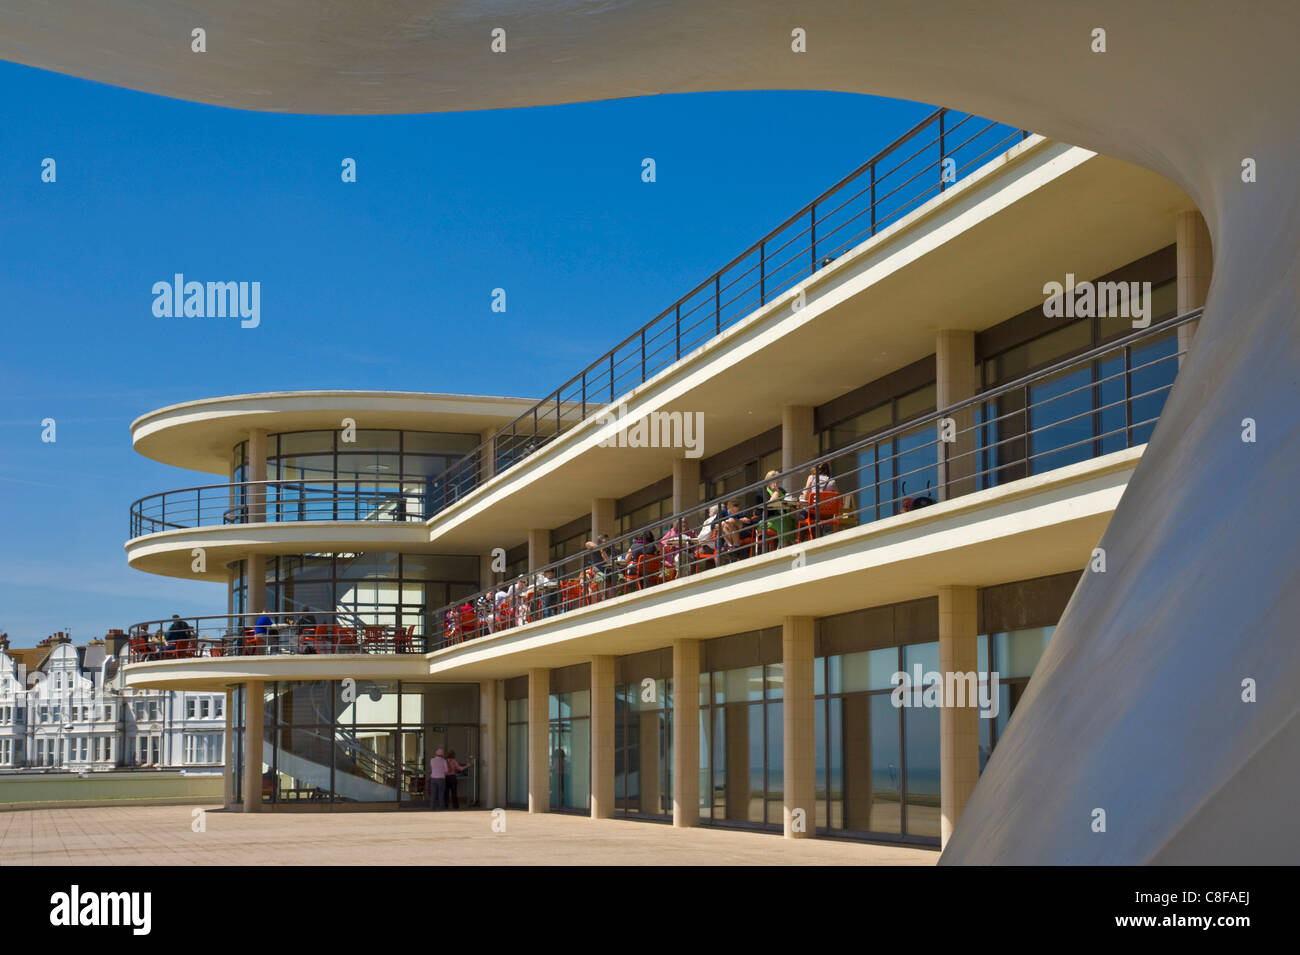 Outdoor stage for performances and exterior of the De La Warr Pavilion, Bexhill on Sea, East Sussex, England, United - Stock Image